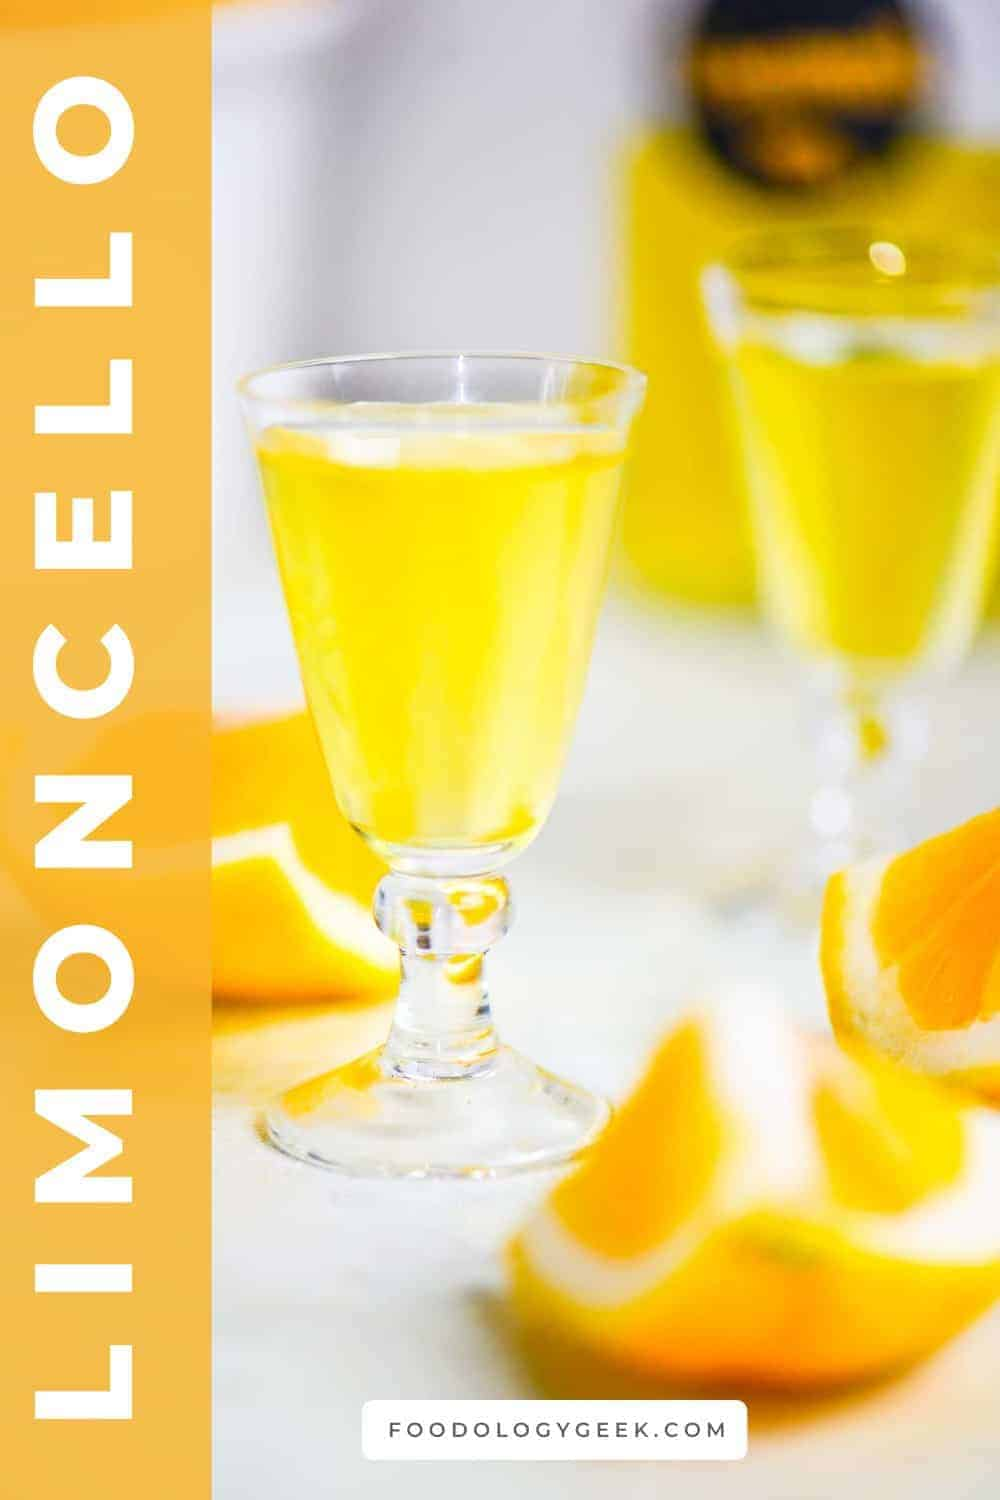 Homemade limoncello is so easy to make! All you need is lemons, sugar, and a strong clear spirit like grain alcohol or vodka. Plus, a little bit of patience. This is the hardest part.